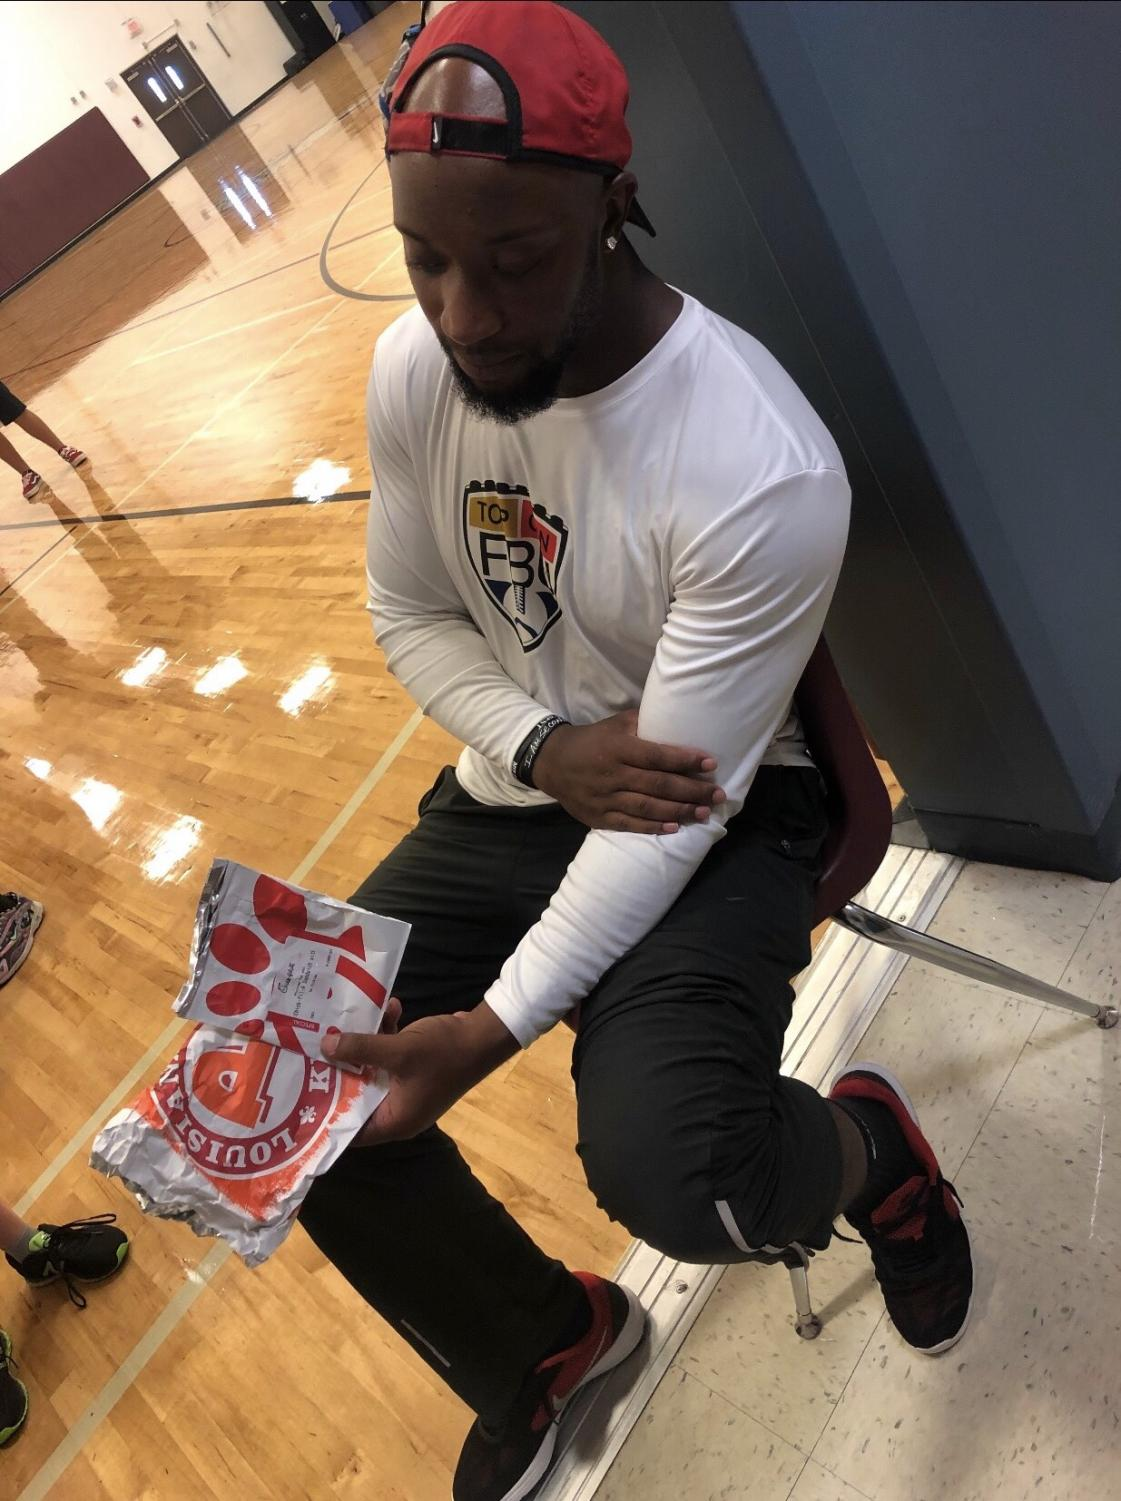 Coach Mike Jones shows off his love of Popeyes and Chick-Fil A sandwiches.